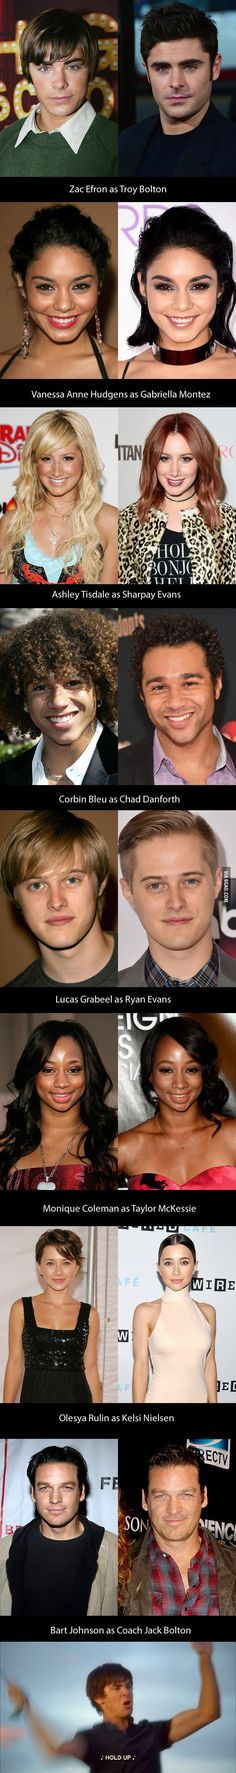 "Here's What The Cast Of ""High School Musical"" Looks Like After 10 Years - 9GAG"